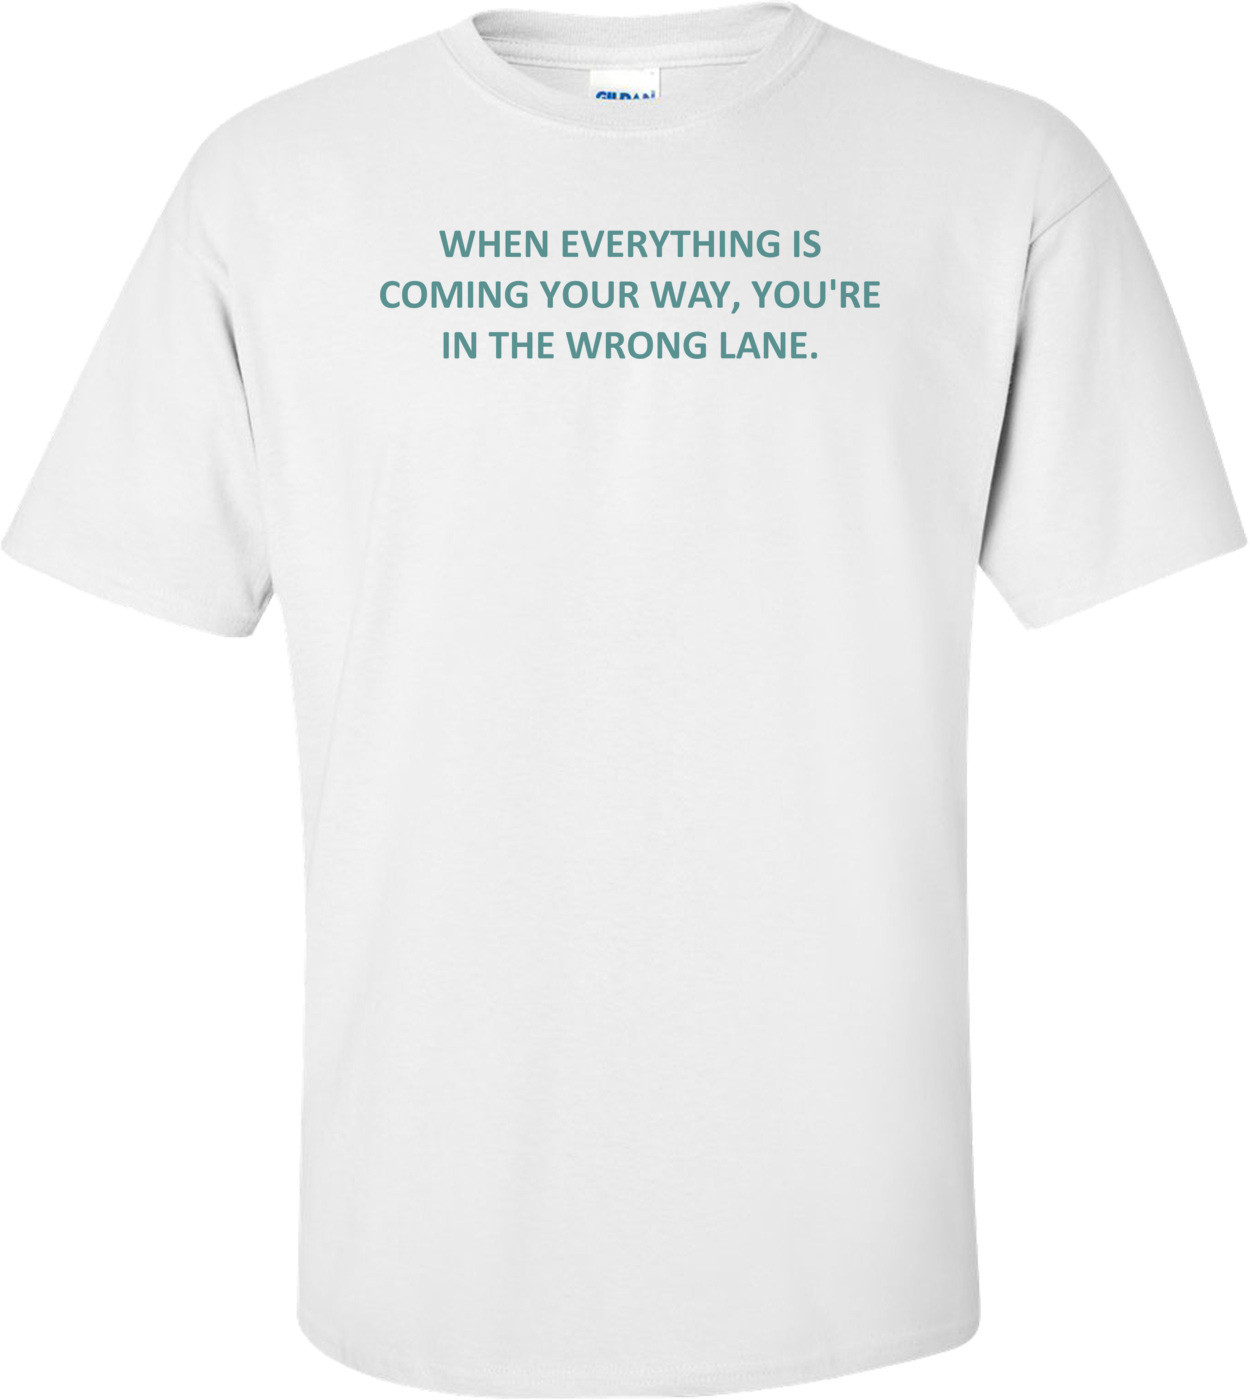 WHEN EVERYTHING IS COMING YOUR WAY, YOU'RE IN THE WRONG LANE. Shirt